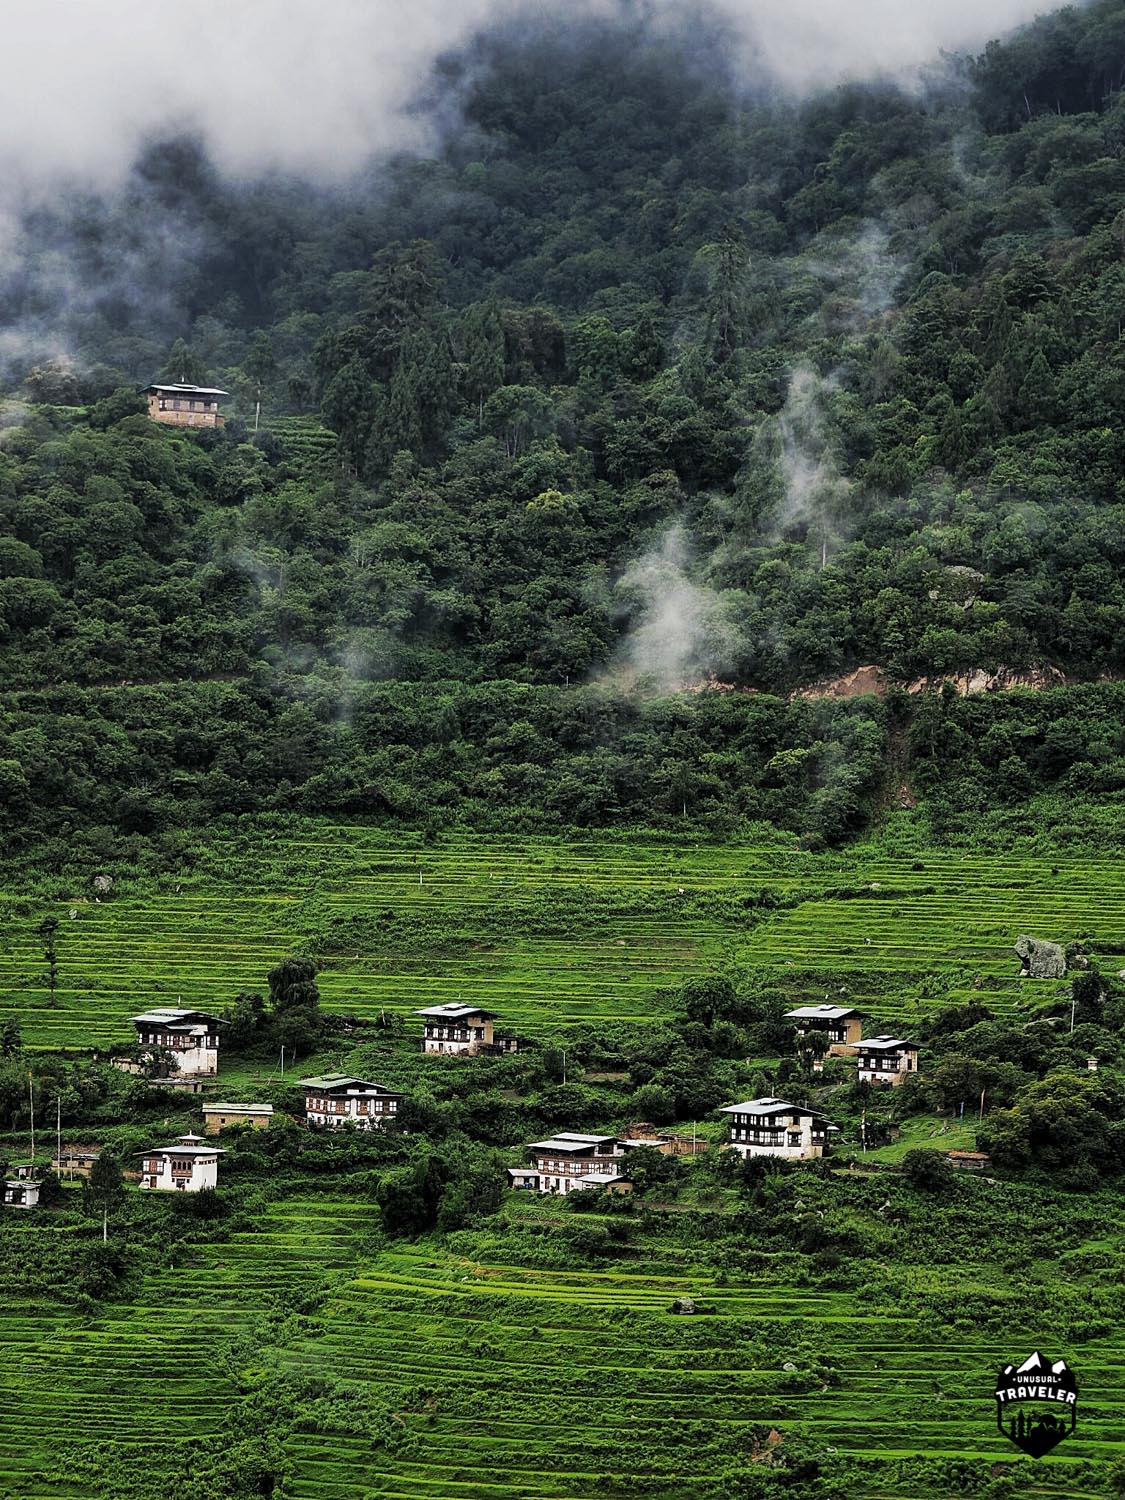 A normal village in Bhutan. So pure and green.